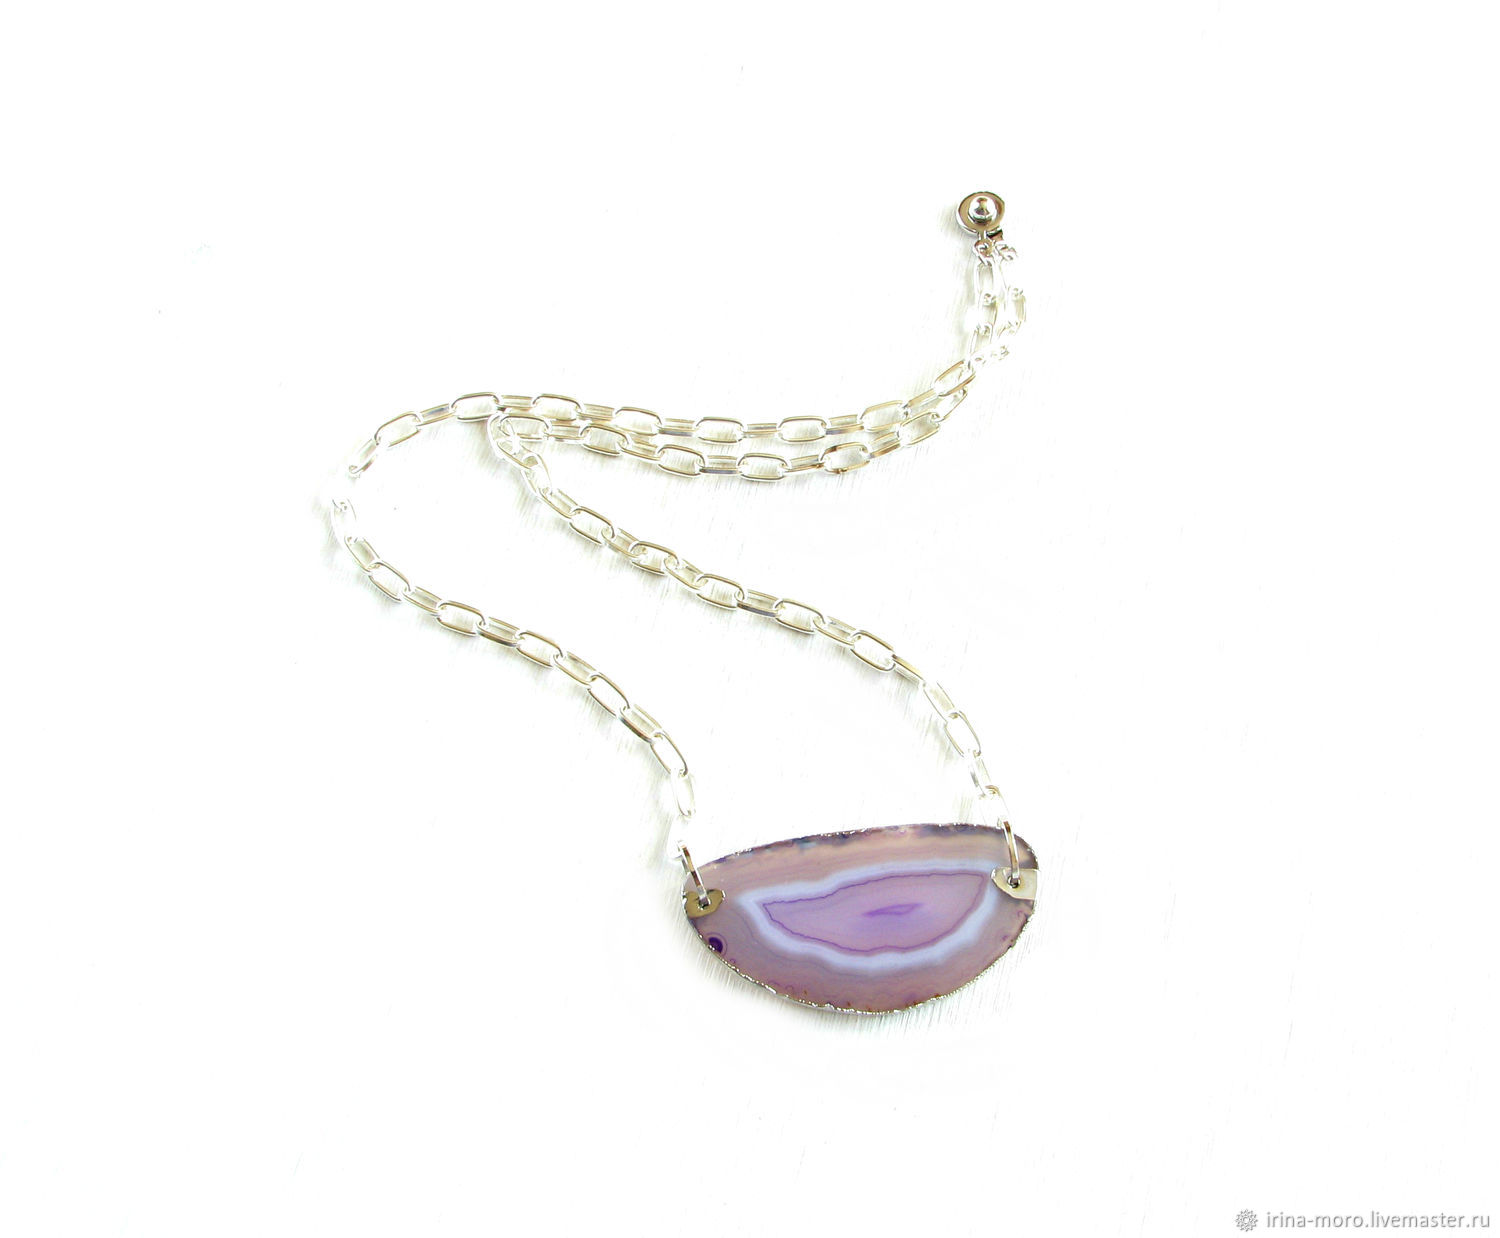 Agate pendant 'Lilac island' lilac pendant on a chain, Pendants, Moscow,  Фото №1